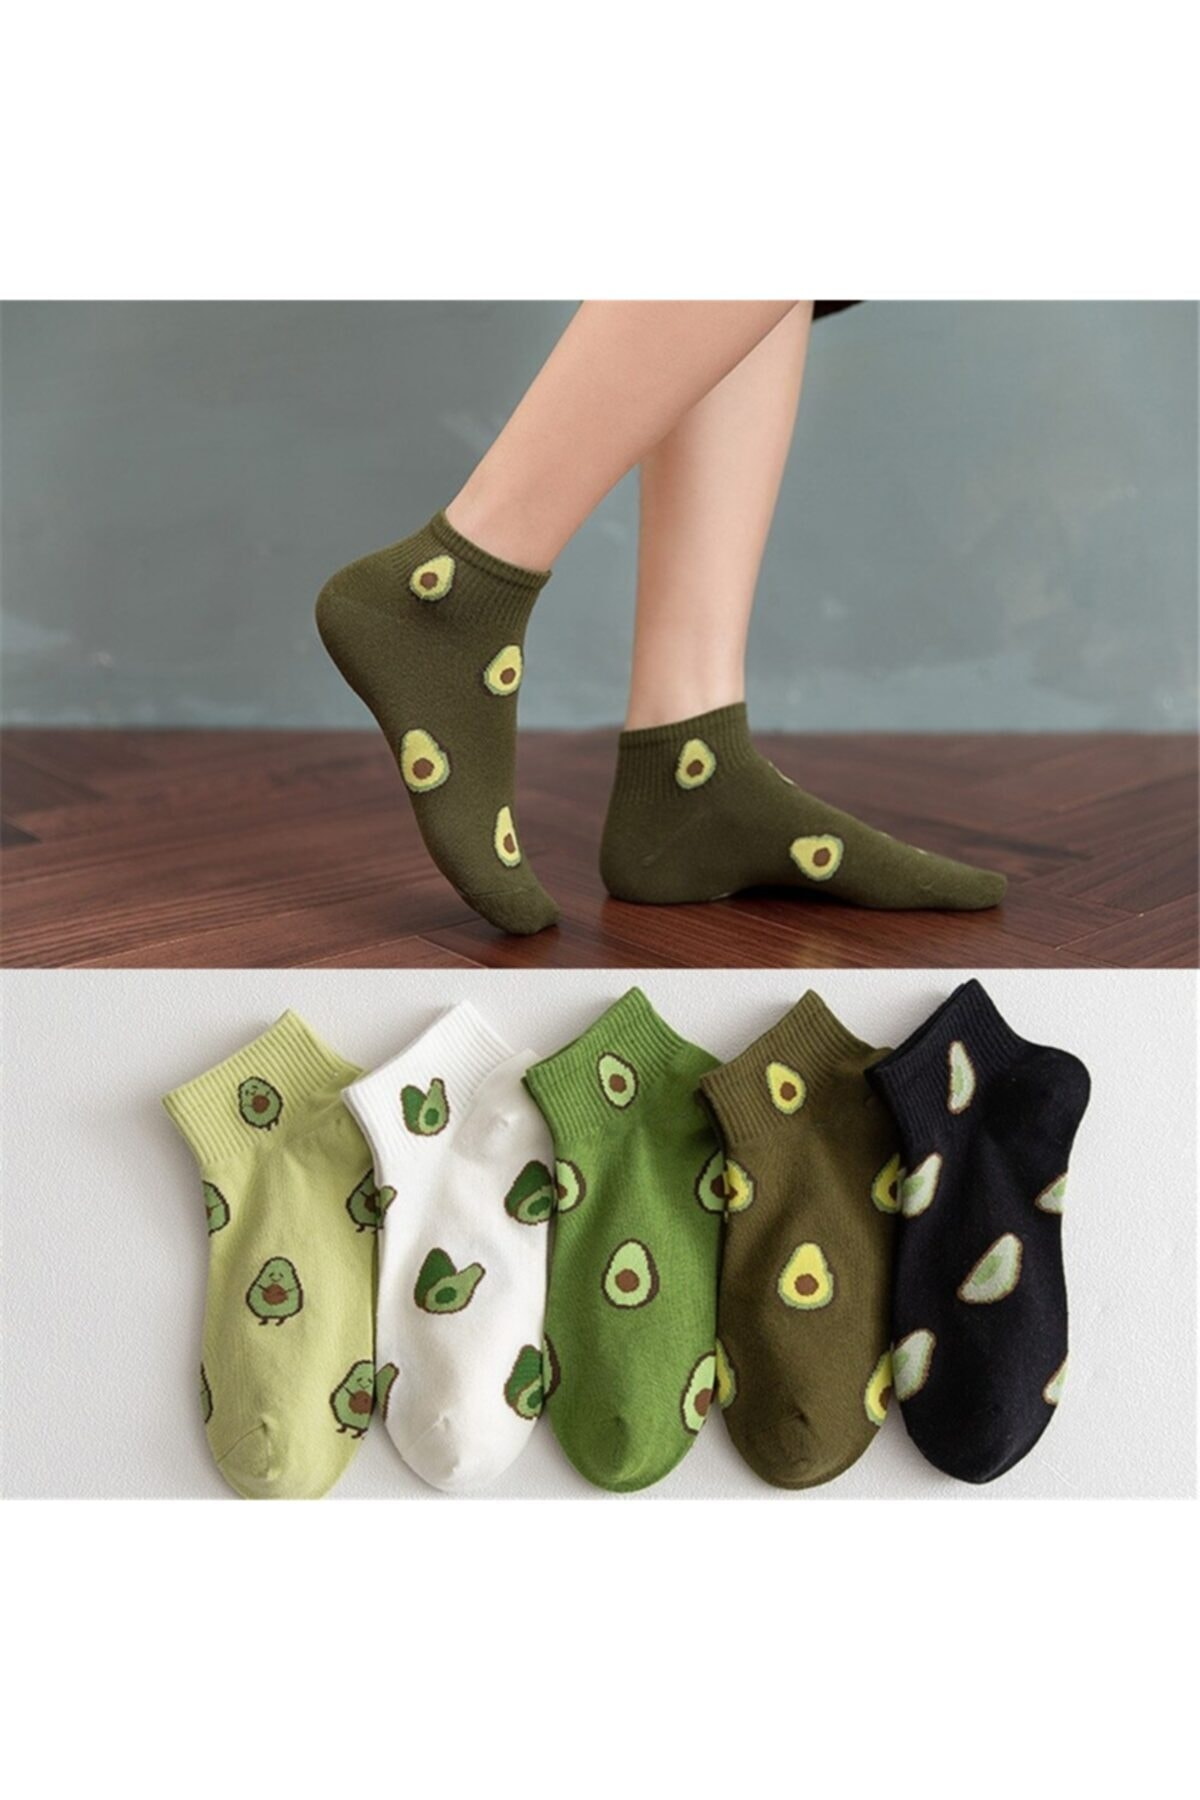 2021 New Fashion 5 Pairs Half Toe Avocado Patterned Socks Comfortable Aesthetic Patterned Cotton New Style Soft Breathable